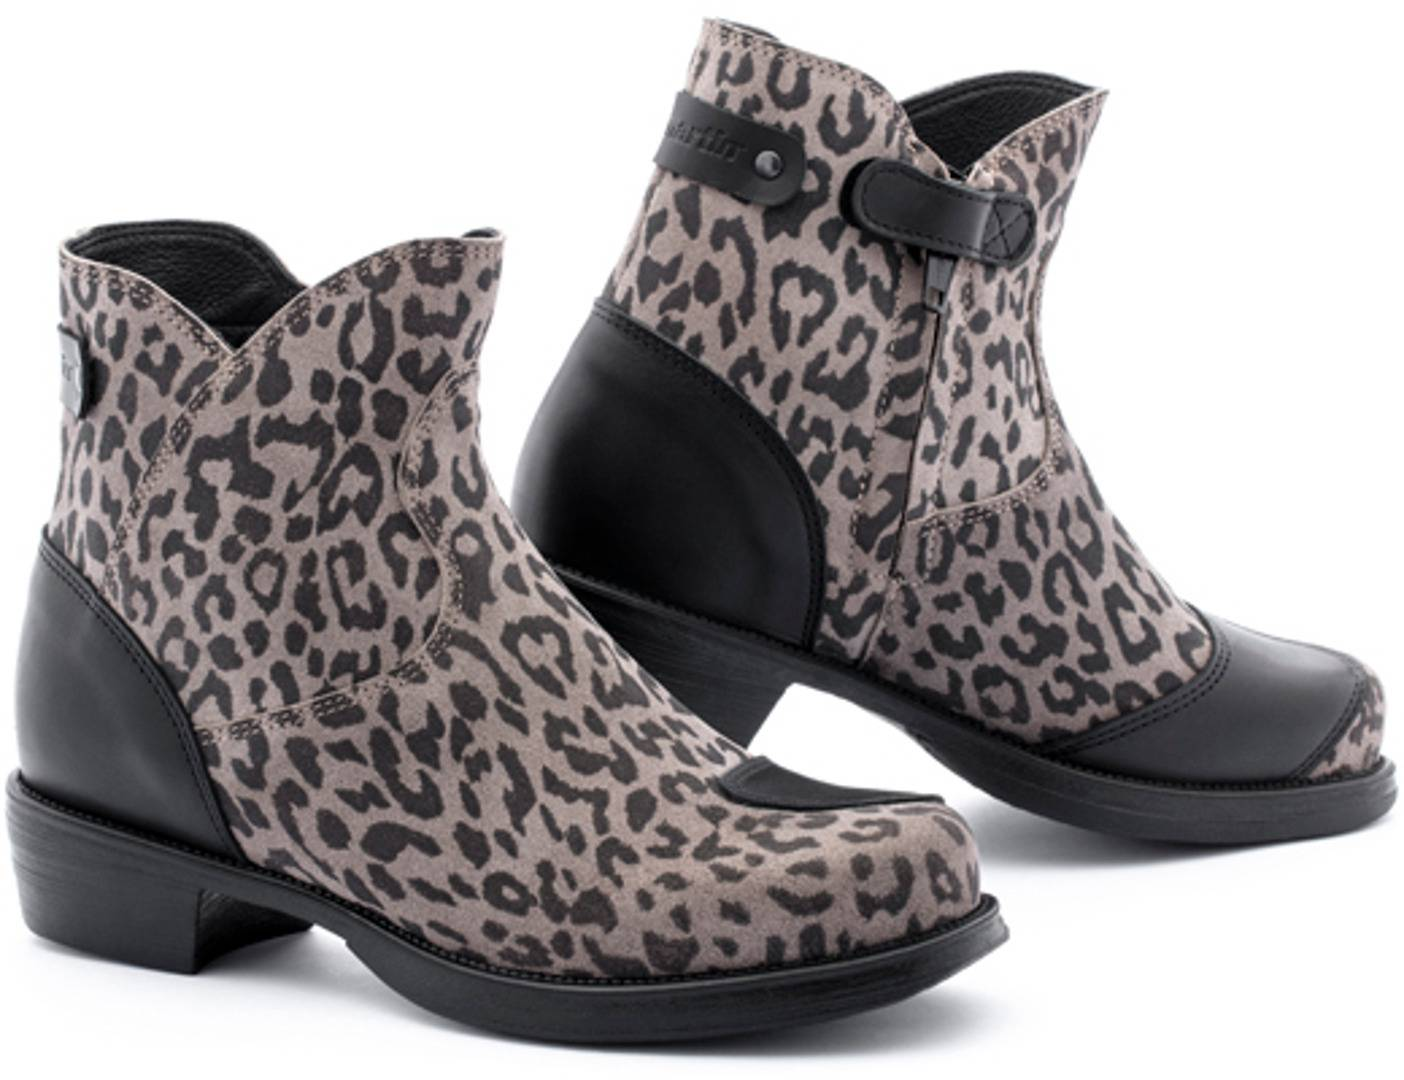 Stylmartin Pearl Leo Ladies Motorcycle Boots  - Black Brown - Size: 37